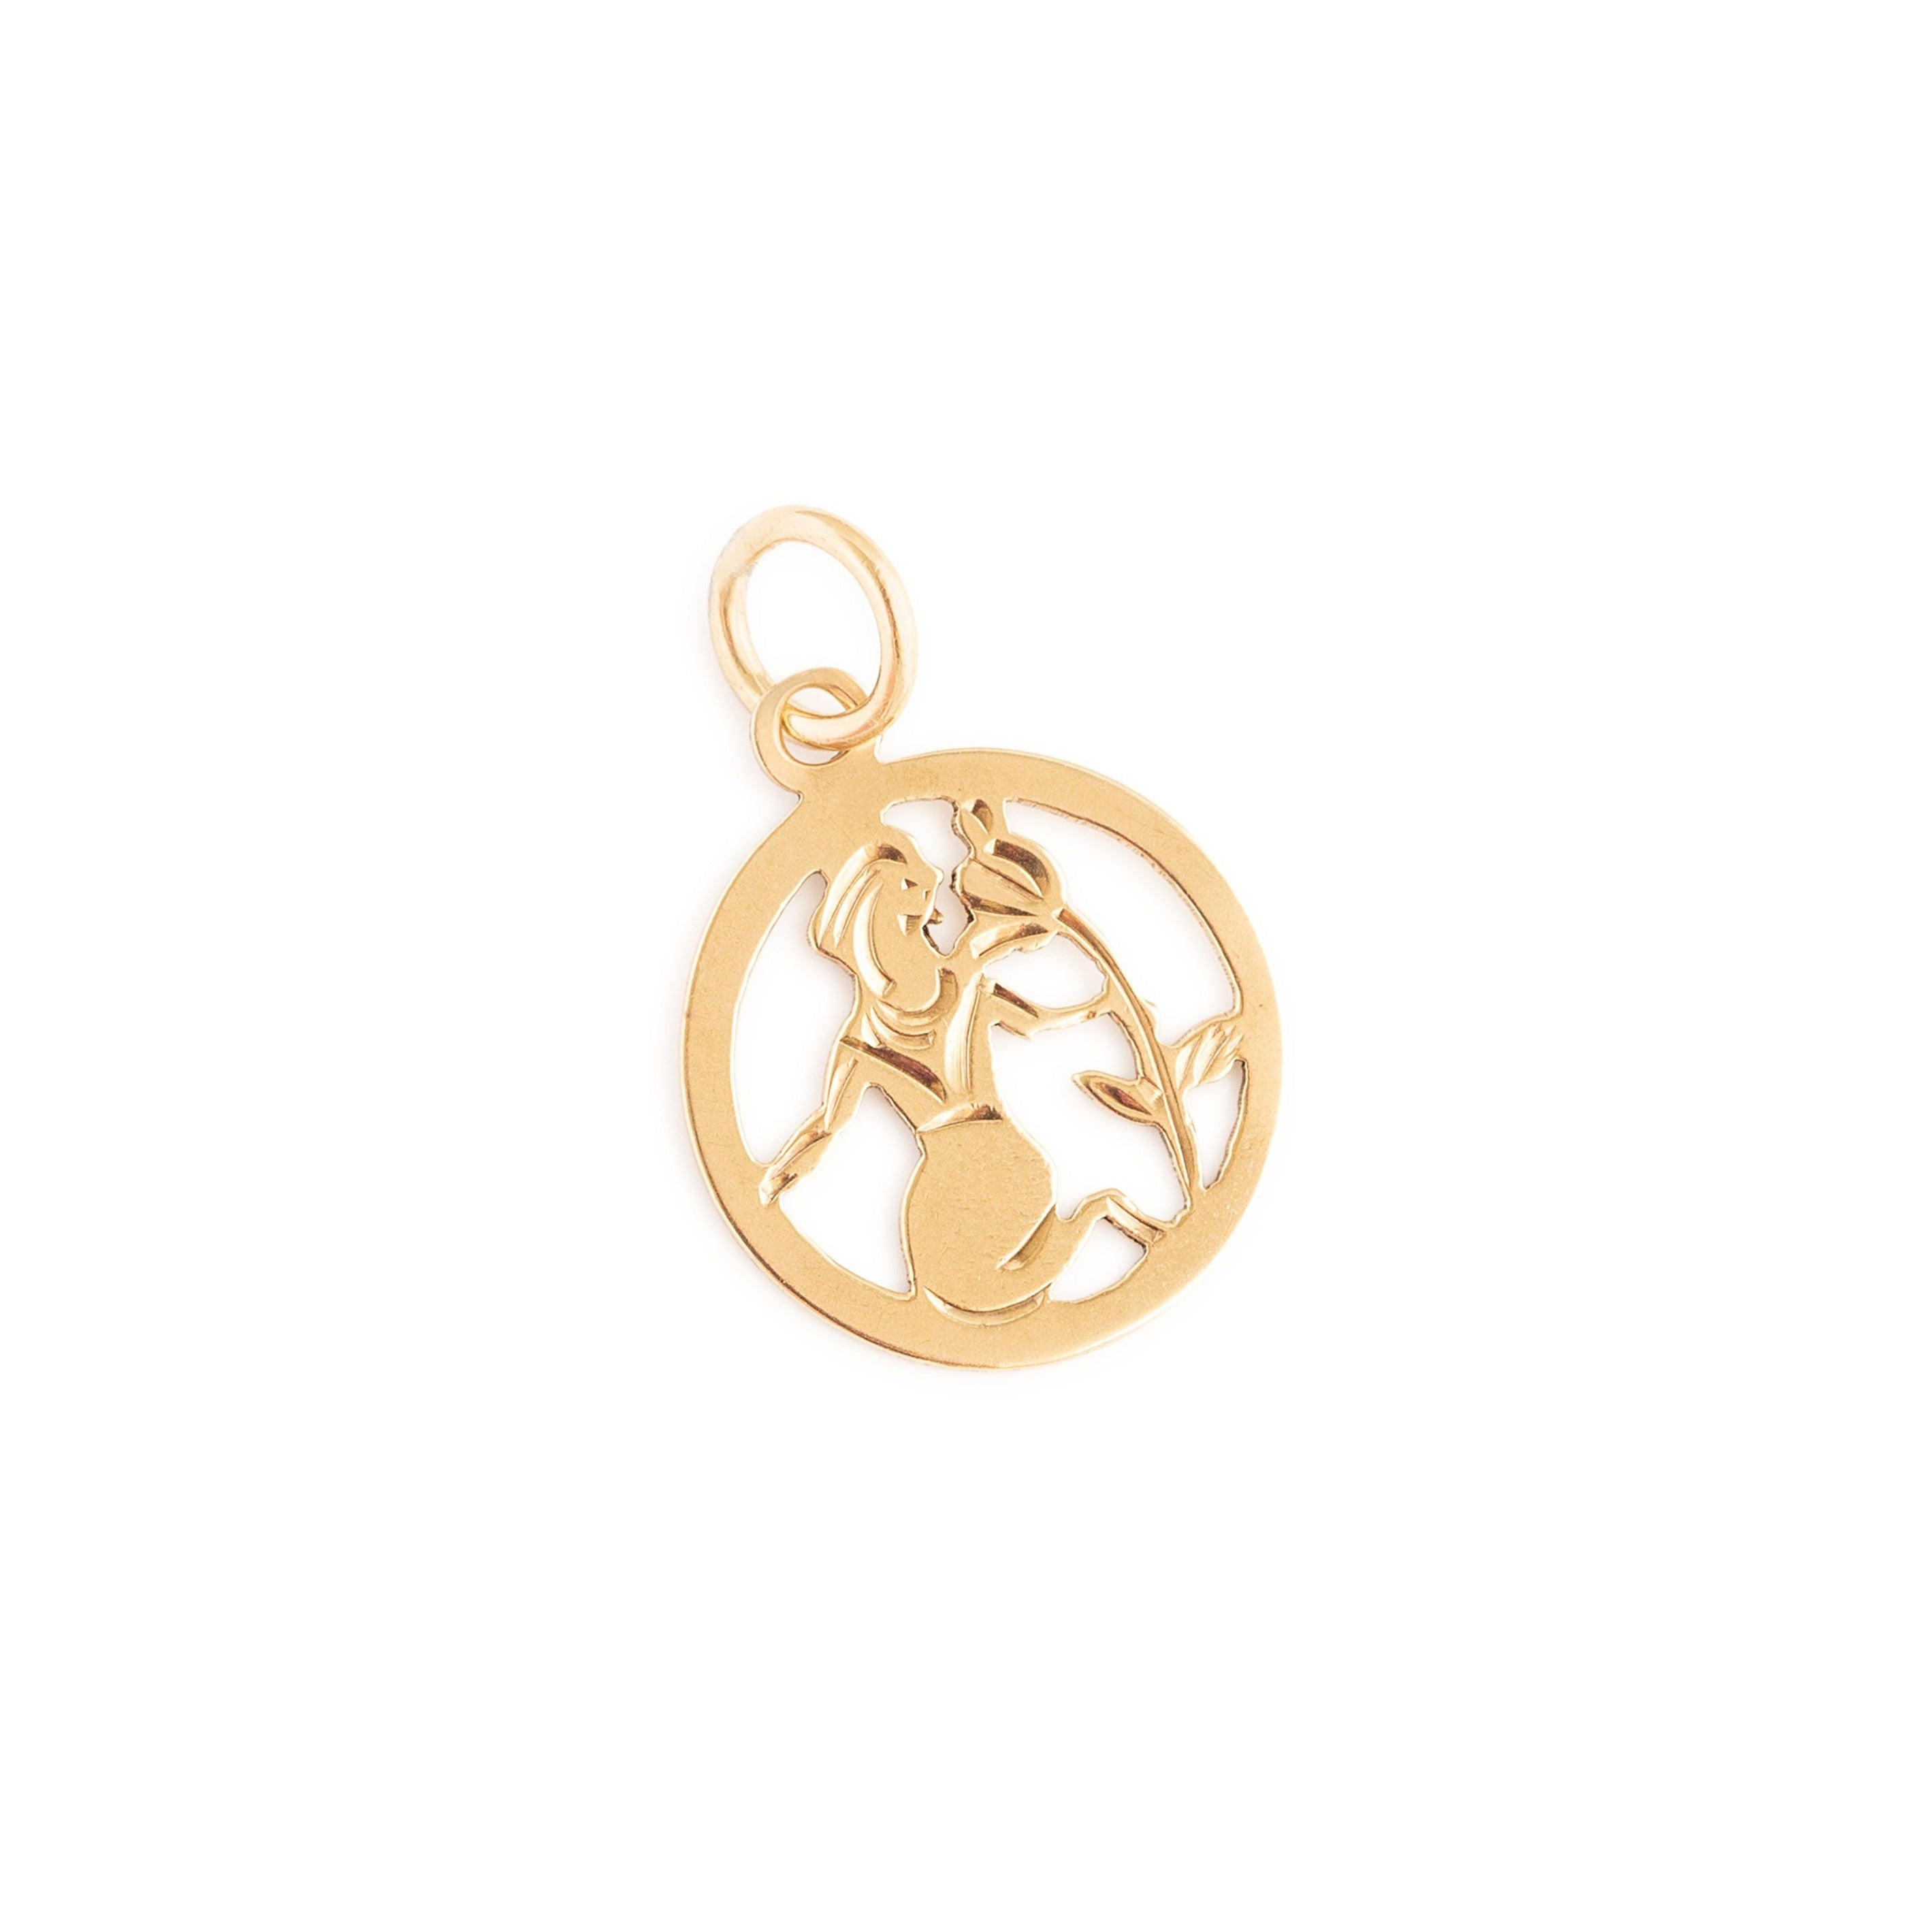 English Virgo 9k Gold Zodiac Charm